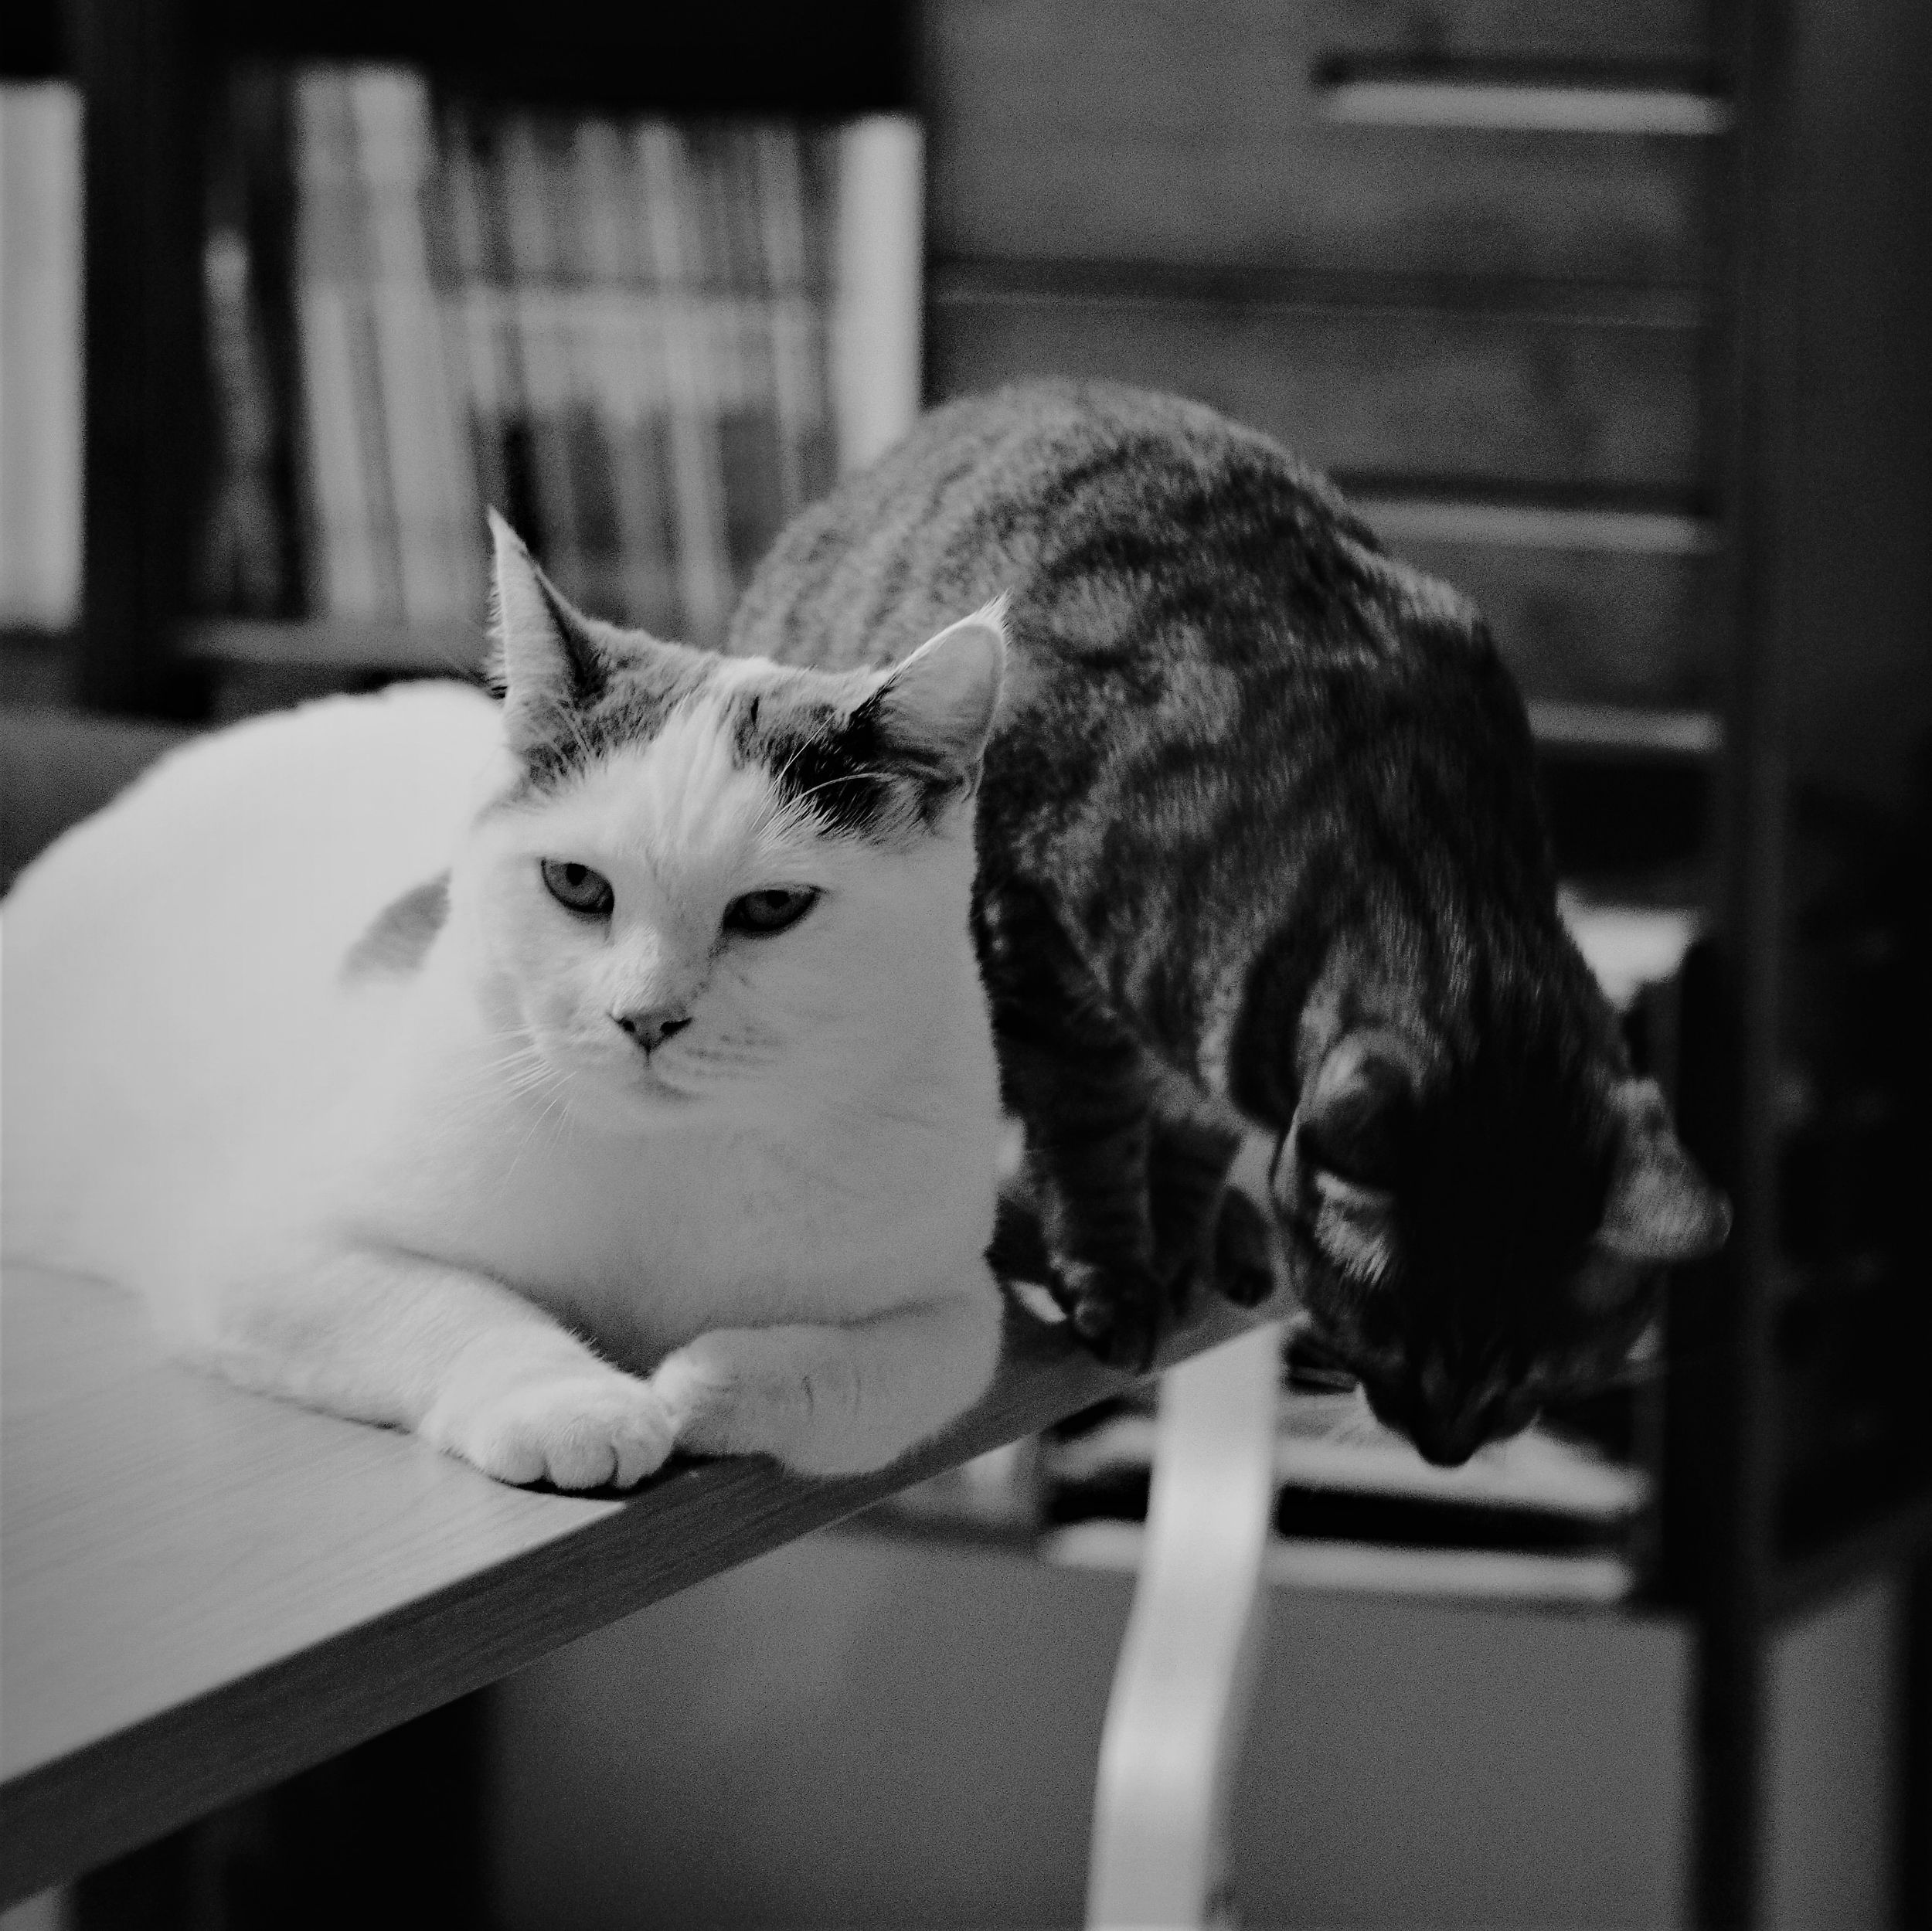 Two cats sitting awkwardly on a table. the tabby one is about to jump off.